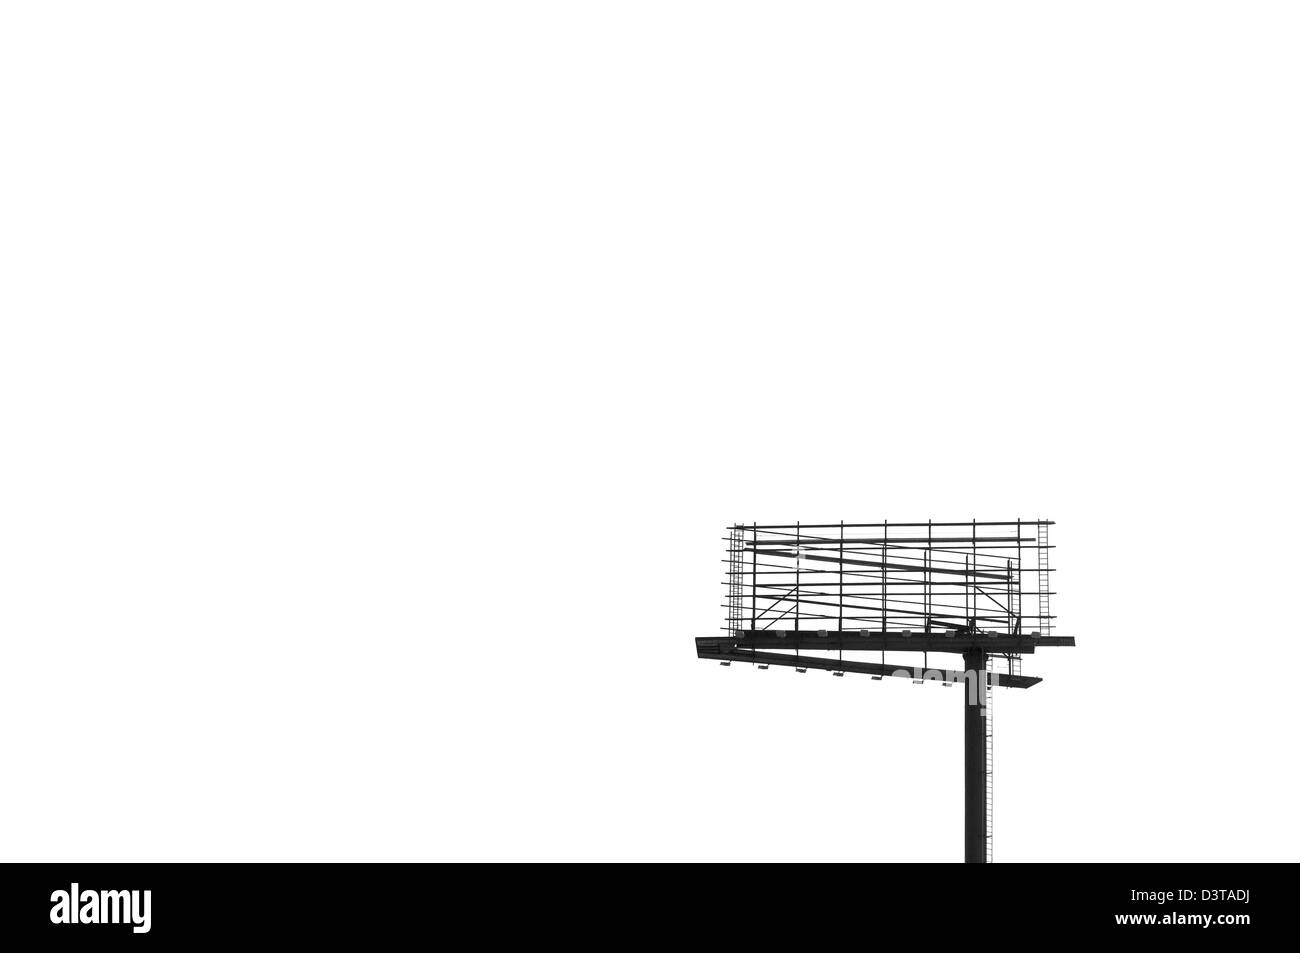 Detail of billboard signage with white sky. - Stock Image